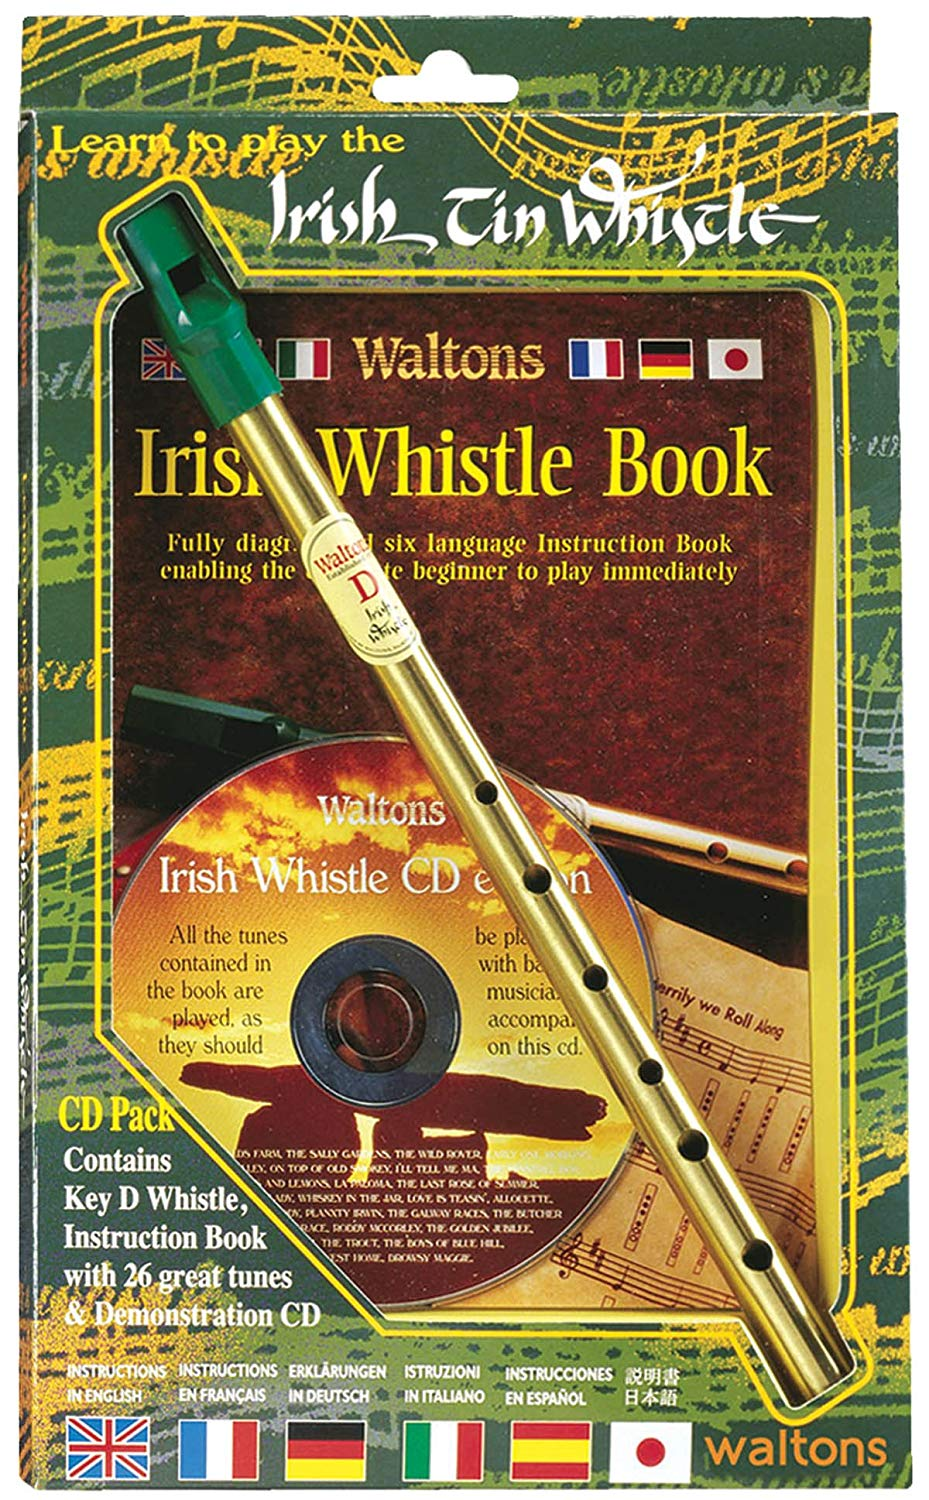 gift of an Irish tin whistle with CD and song book, my Irish gifts